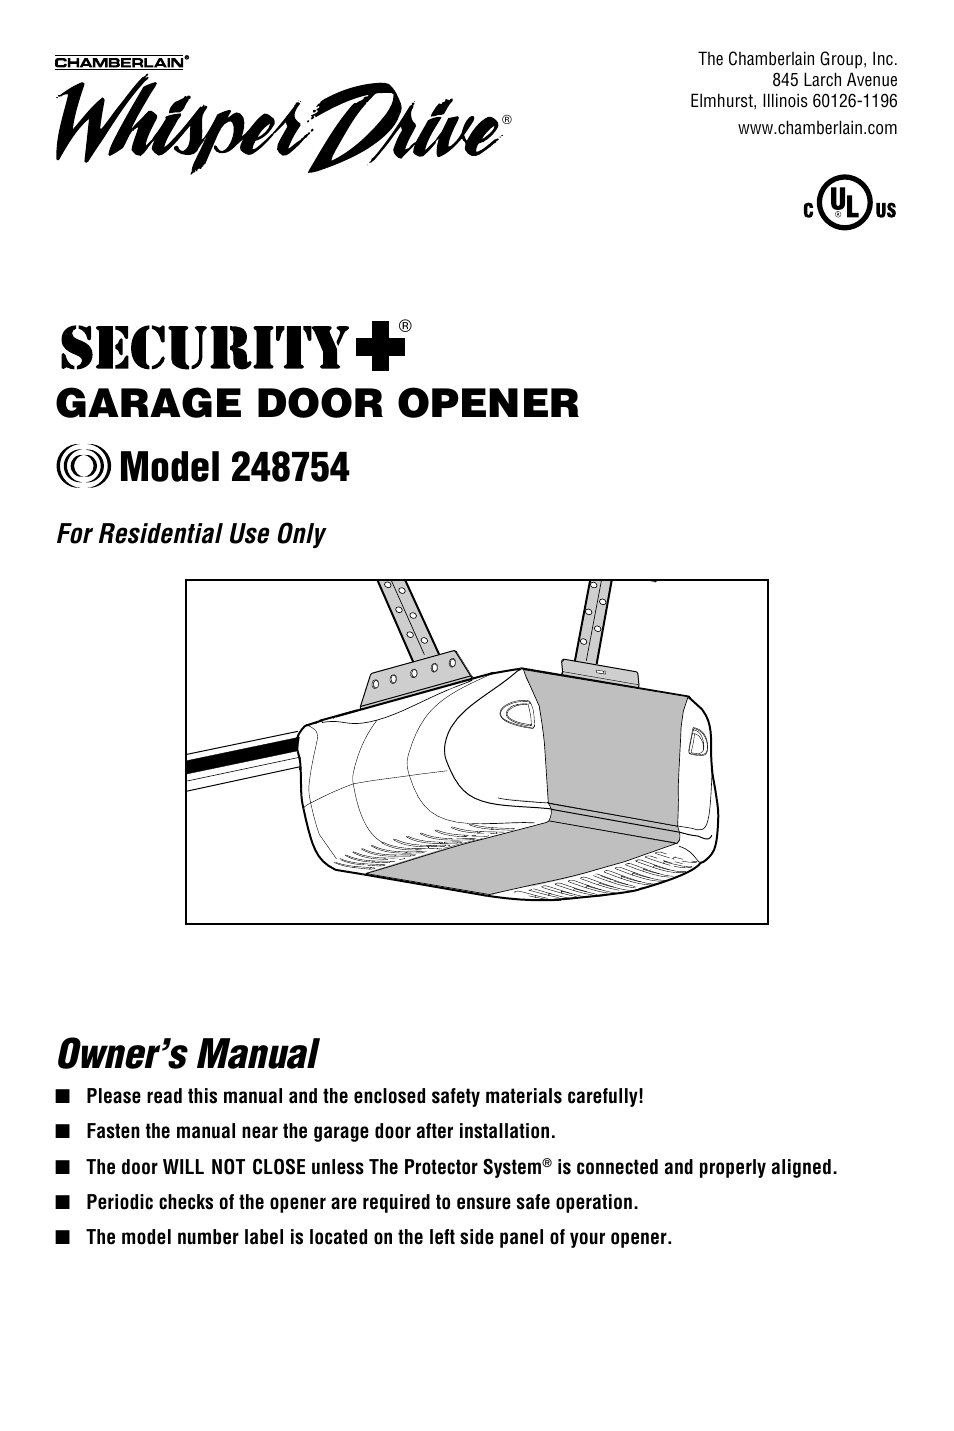 chamberlain whisper drive garage door opener wiring diagram